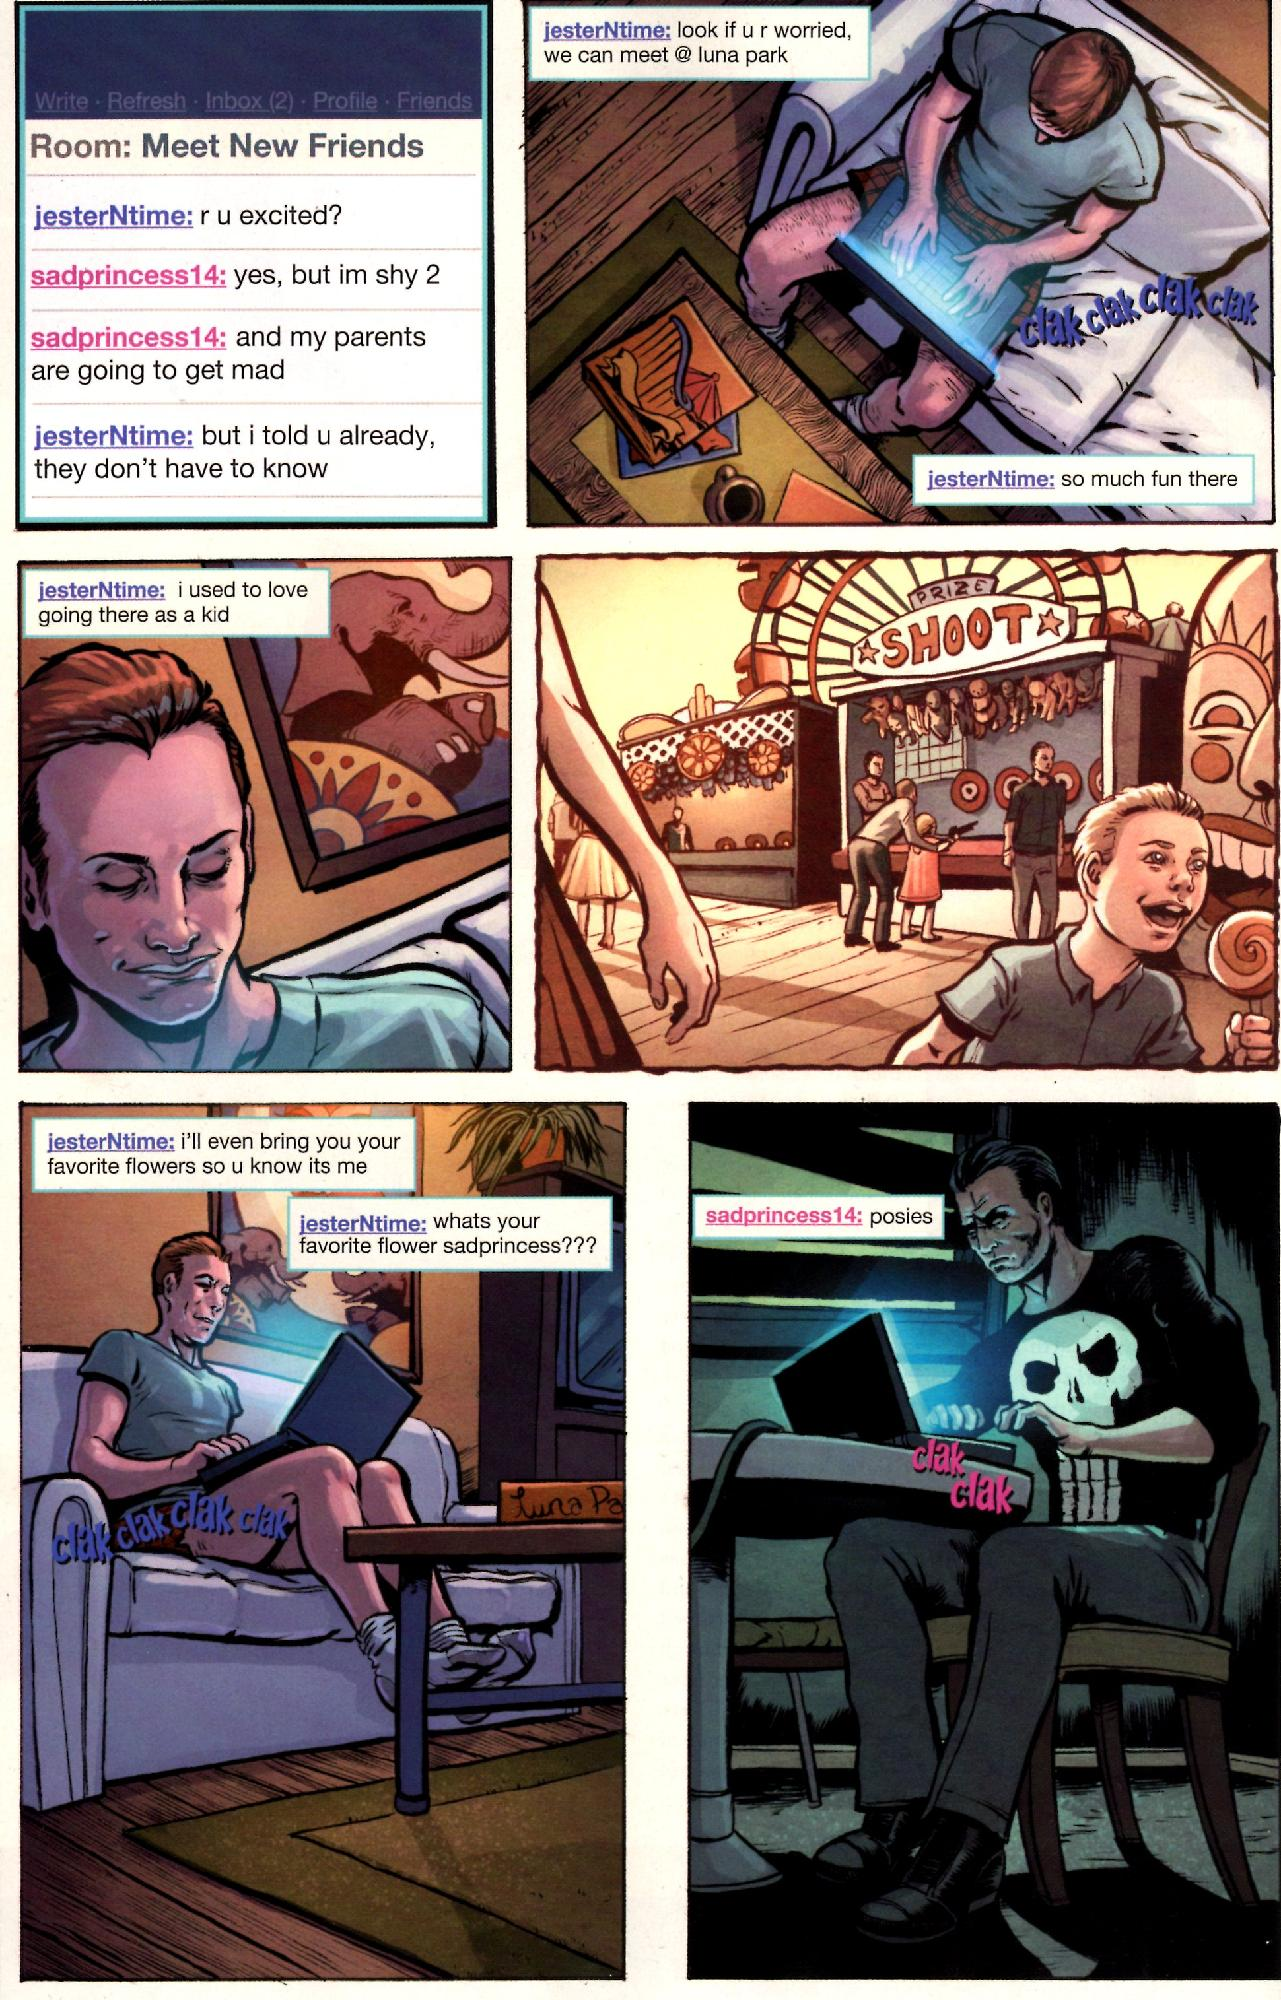 The Punisher is masquerading as a young girl online so he can lure sex…